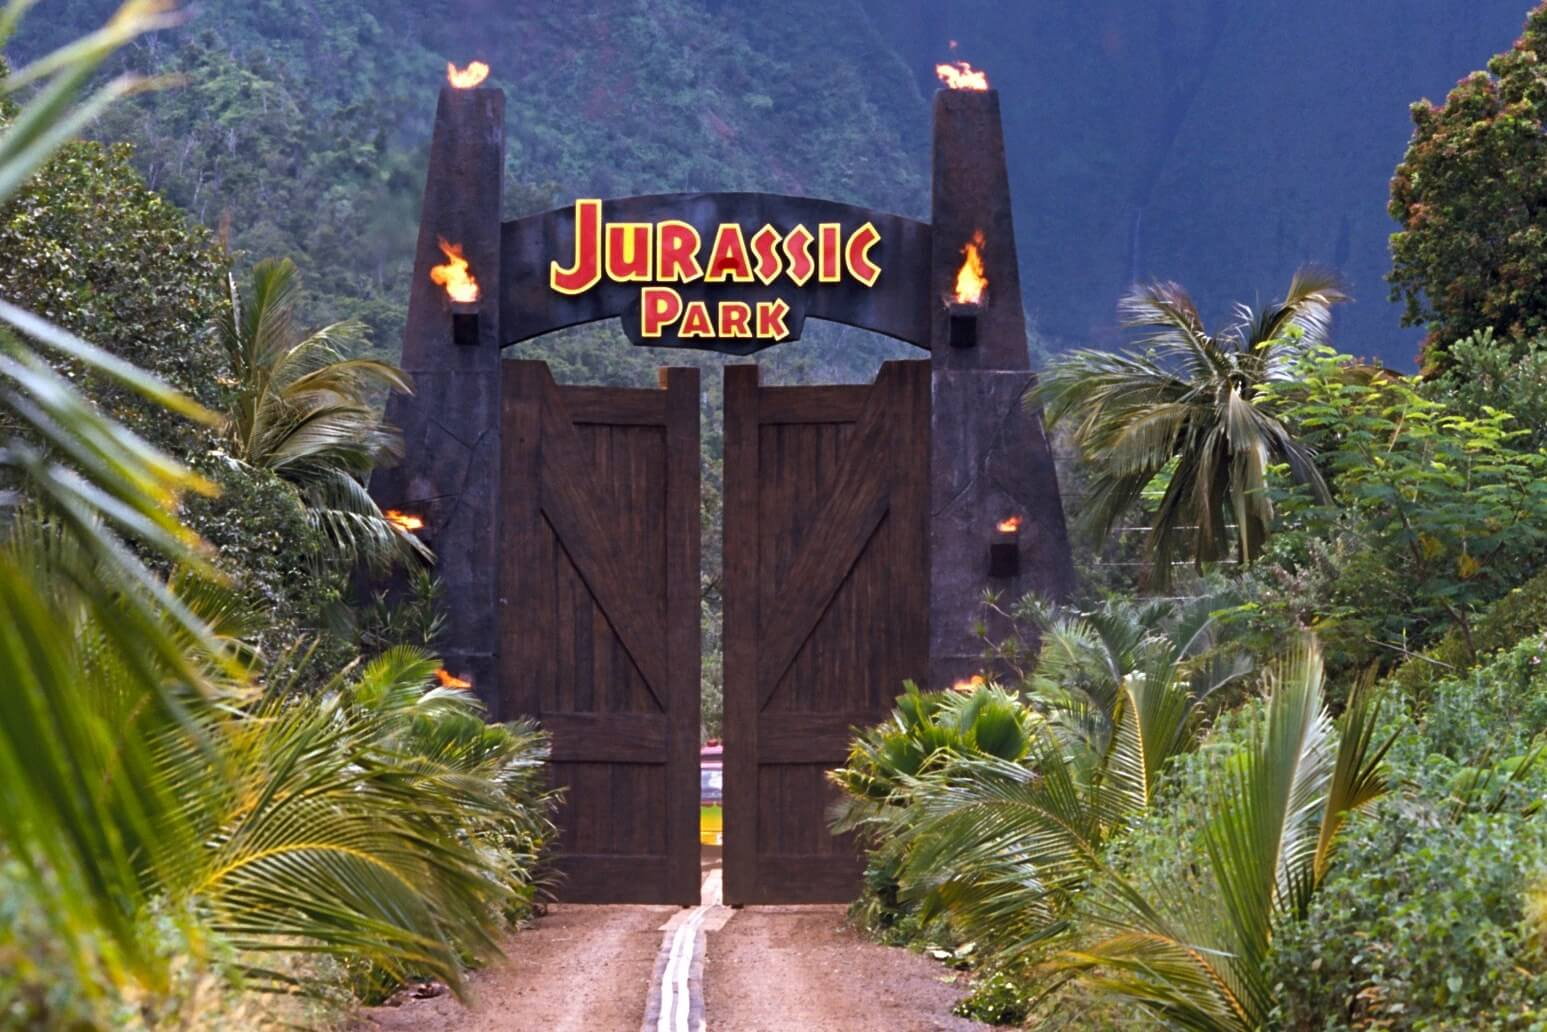 Jurassic Park: A 15 Mile Drive-in Production